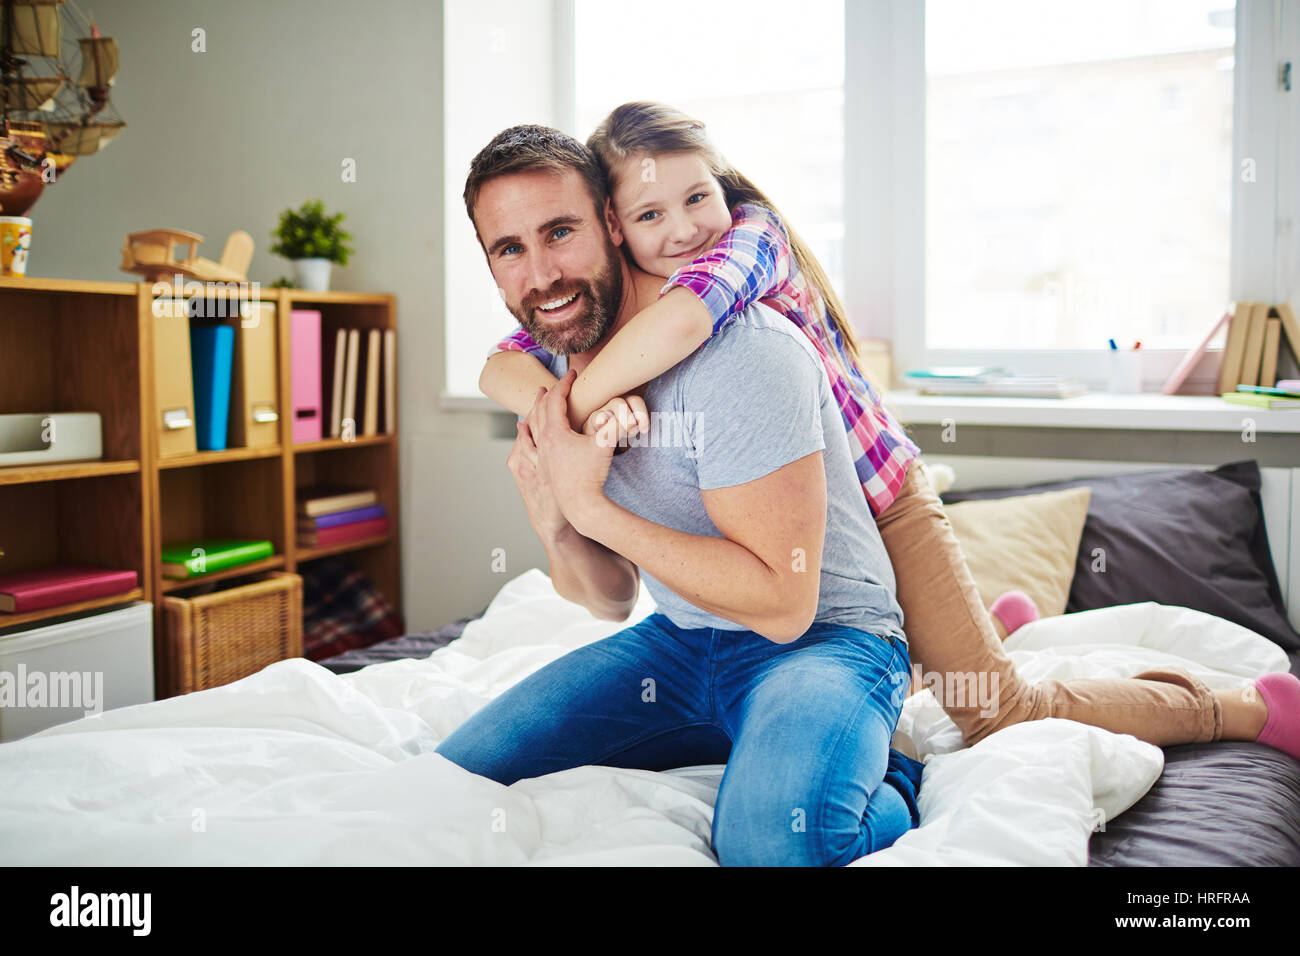 Cute little girl embracing her happy father tenderly while looking at camera with wide smile, full-length portrait - Stock Image